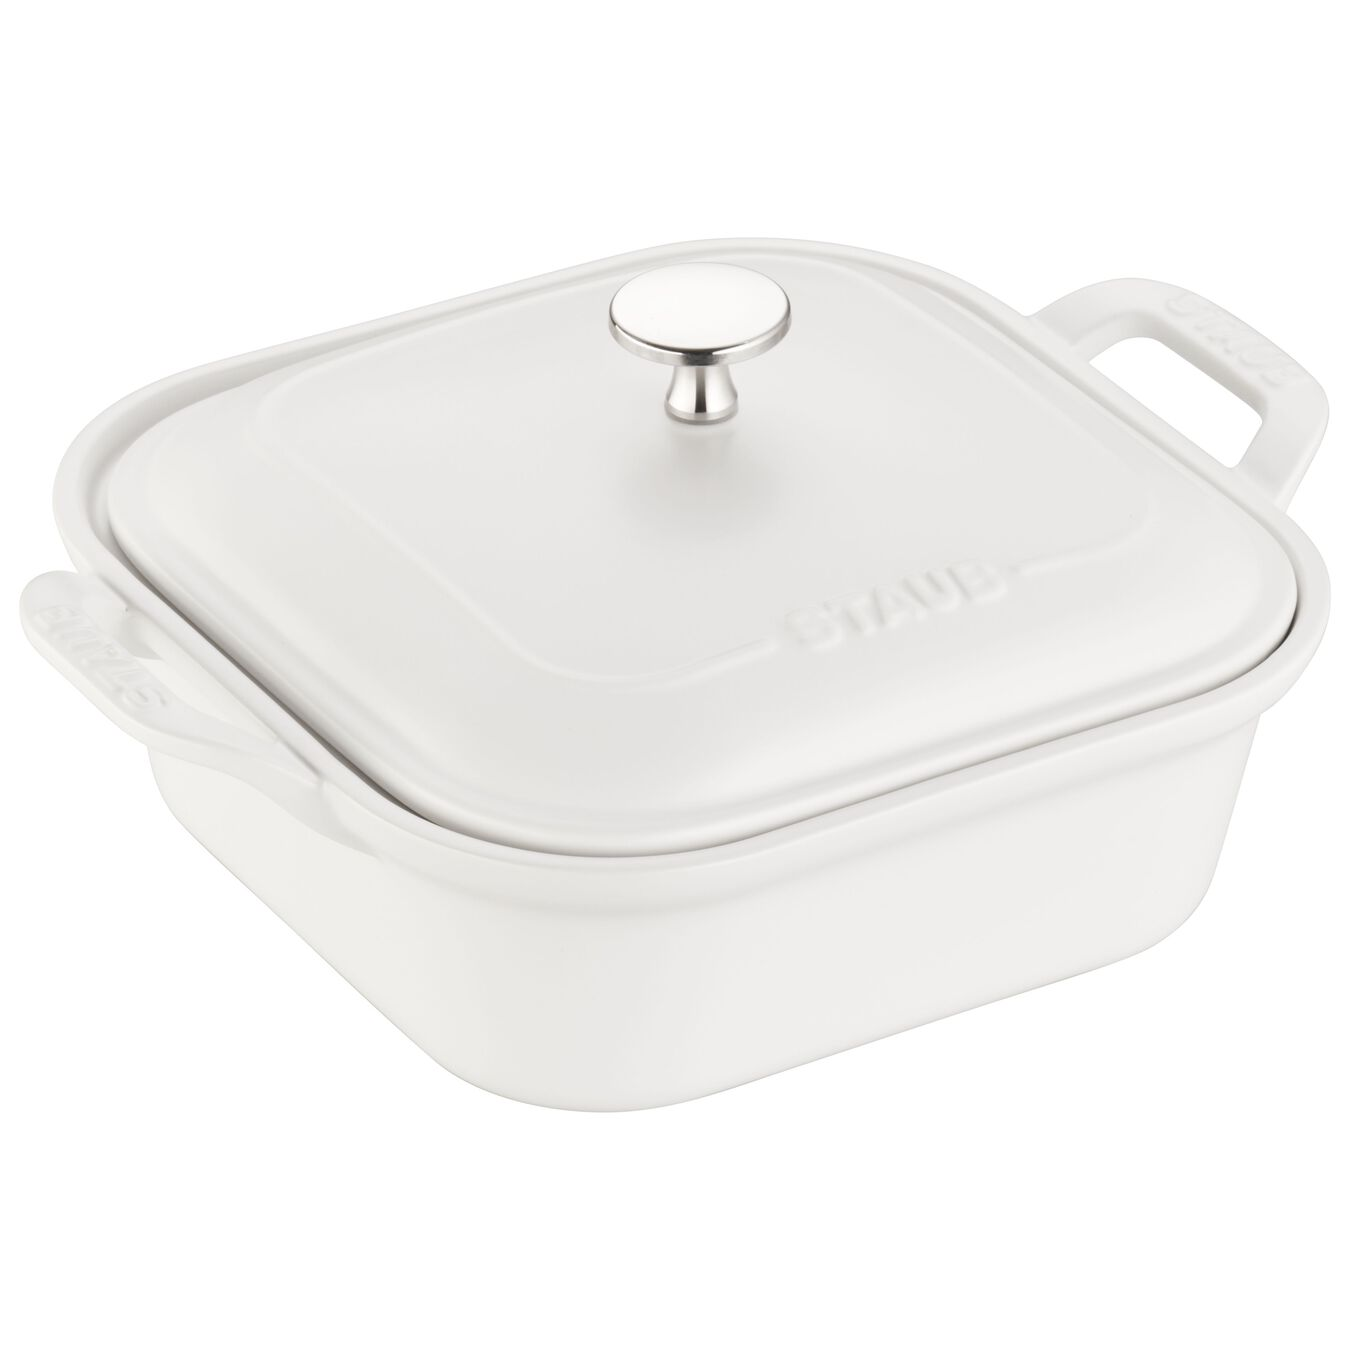 9-inch X 9-inch Square Covered Baking Dish - Matte White,,large 1